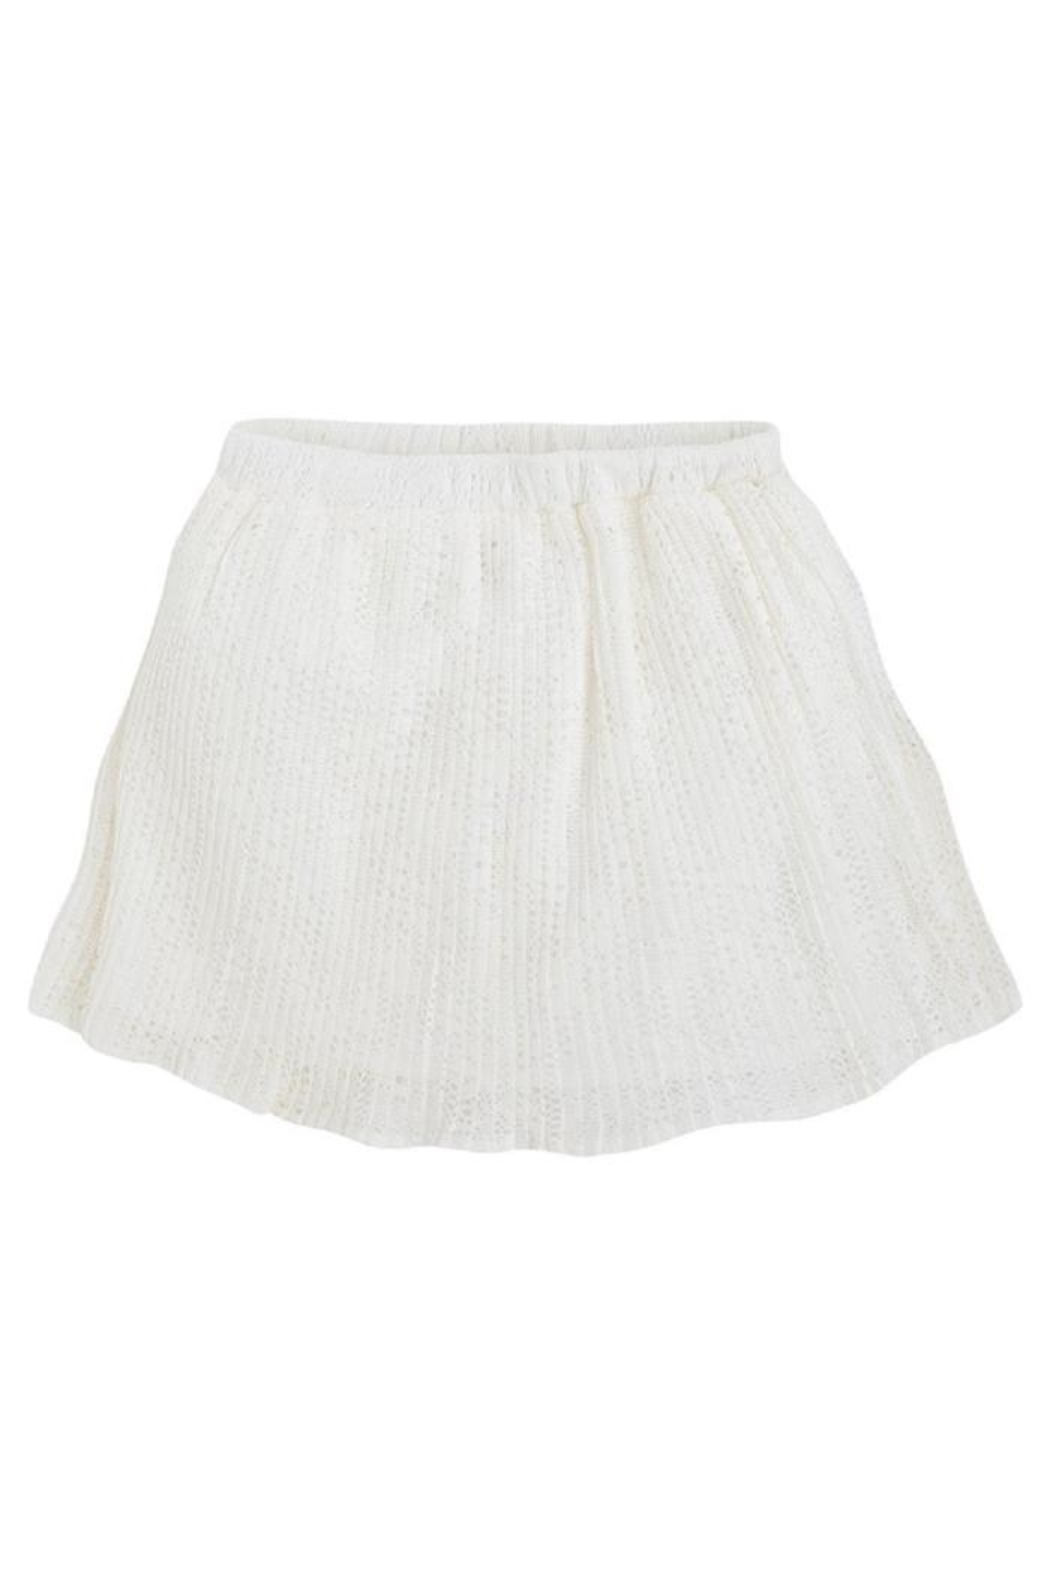 Mayoral Crochet Pleat Skirt - Front Full Image